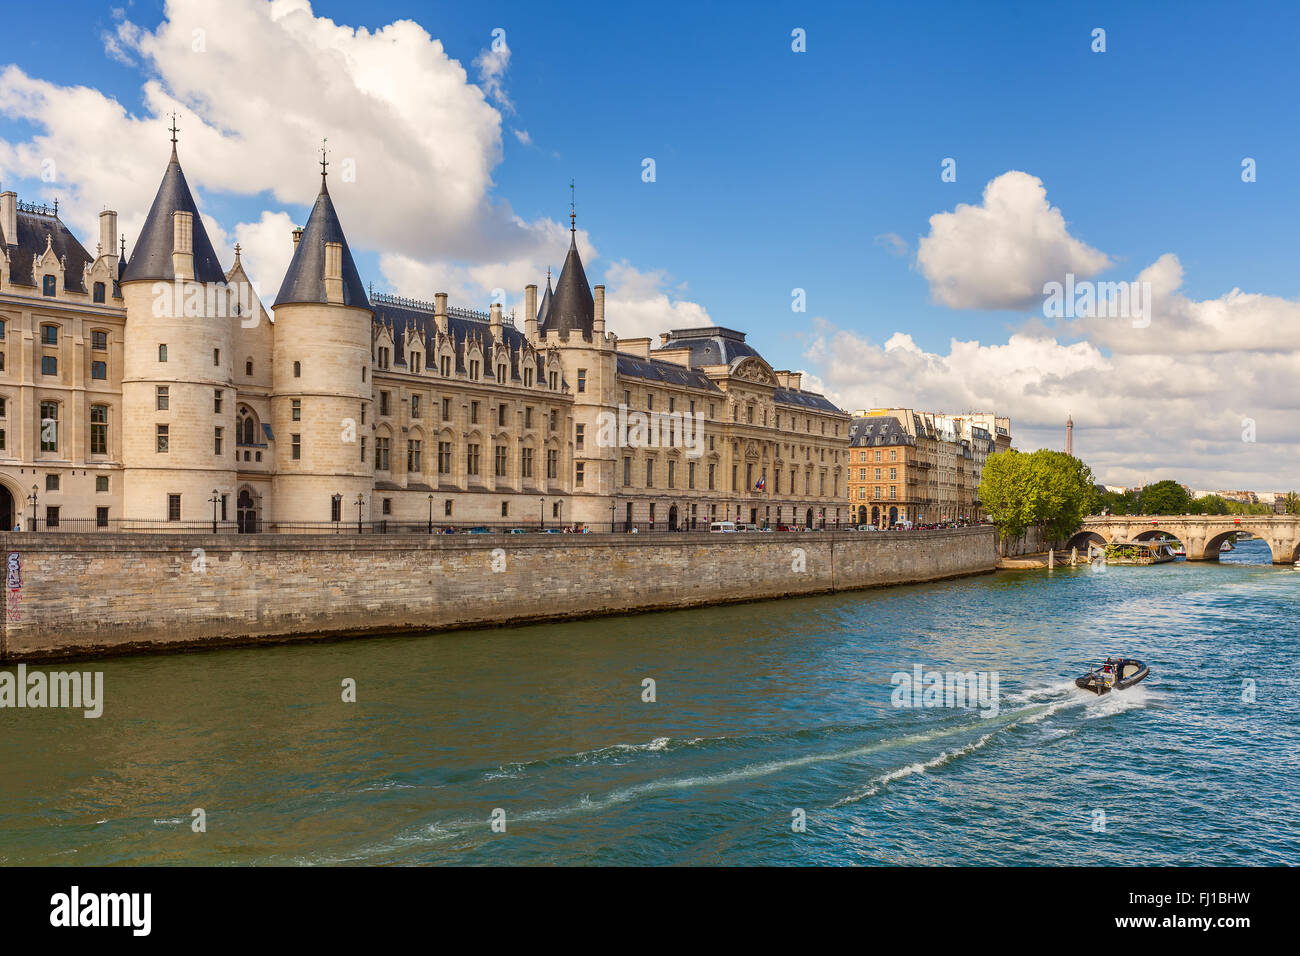 View of Conciergerie - former prison and part of former royal palace on the bank of Seine river in Paris, France. - Stock Image